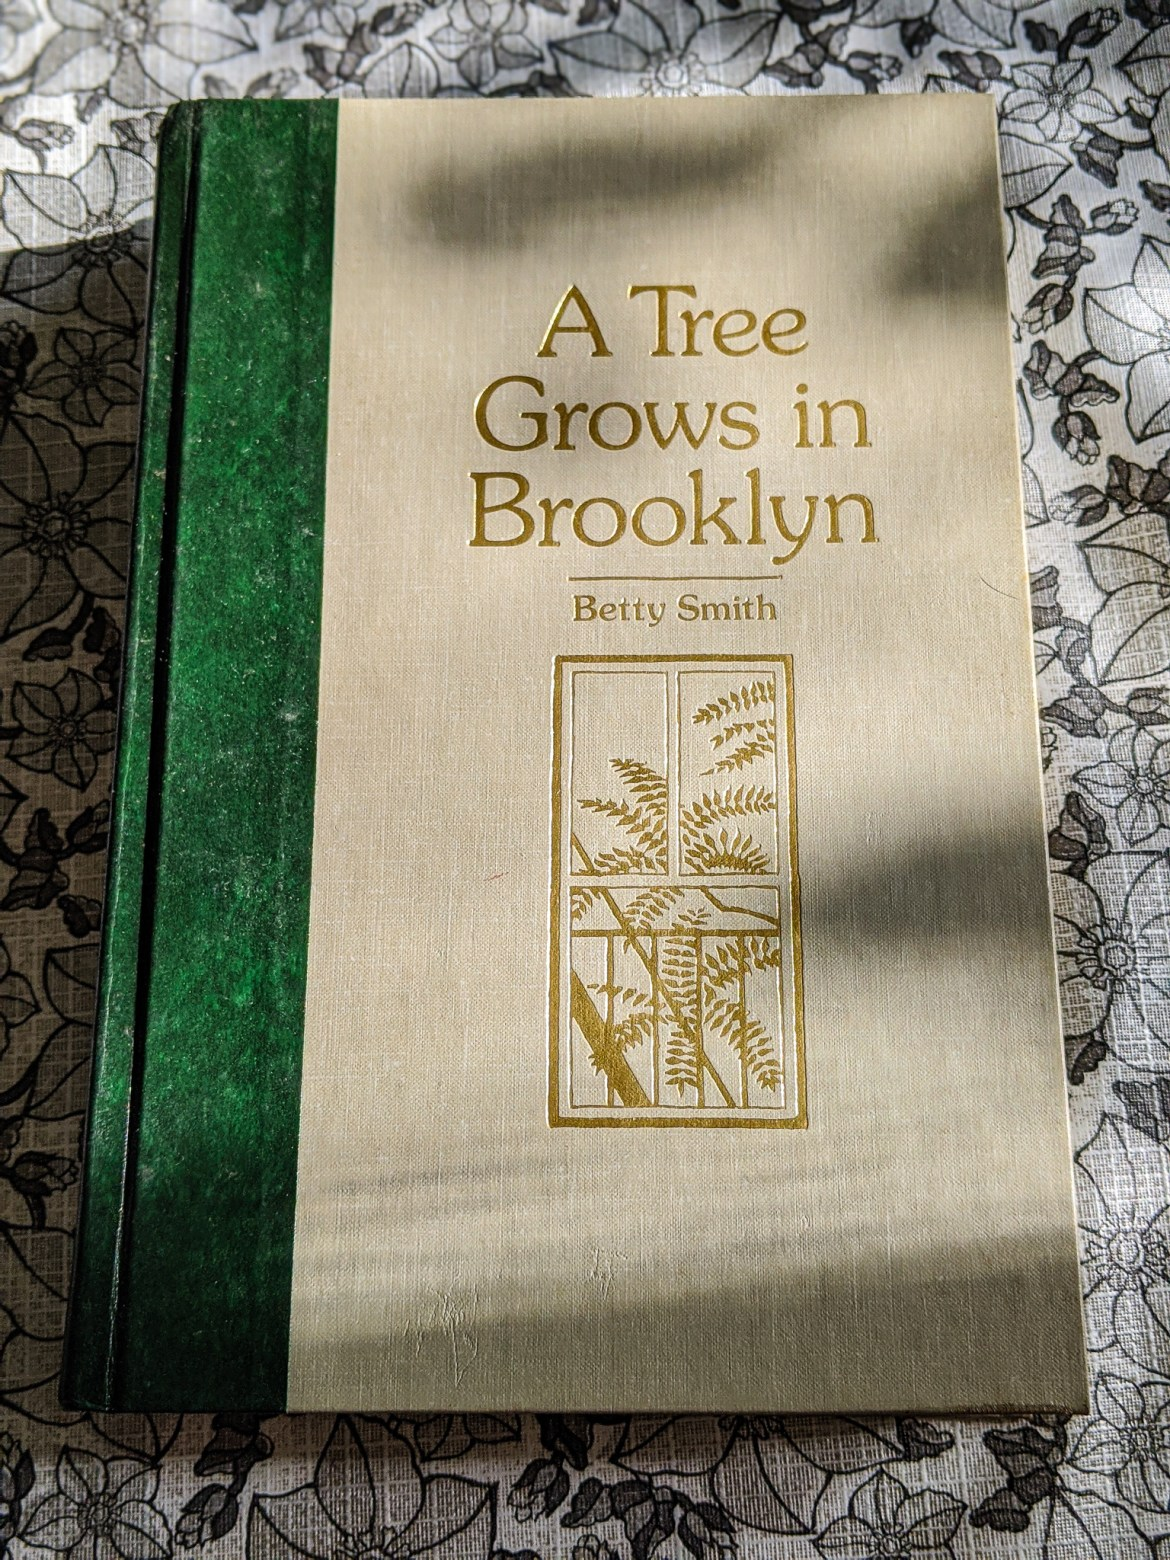 A Tree Grows in Brooklyn | Copyright image From The Corner Table